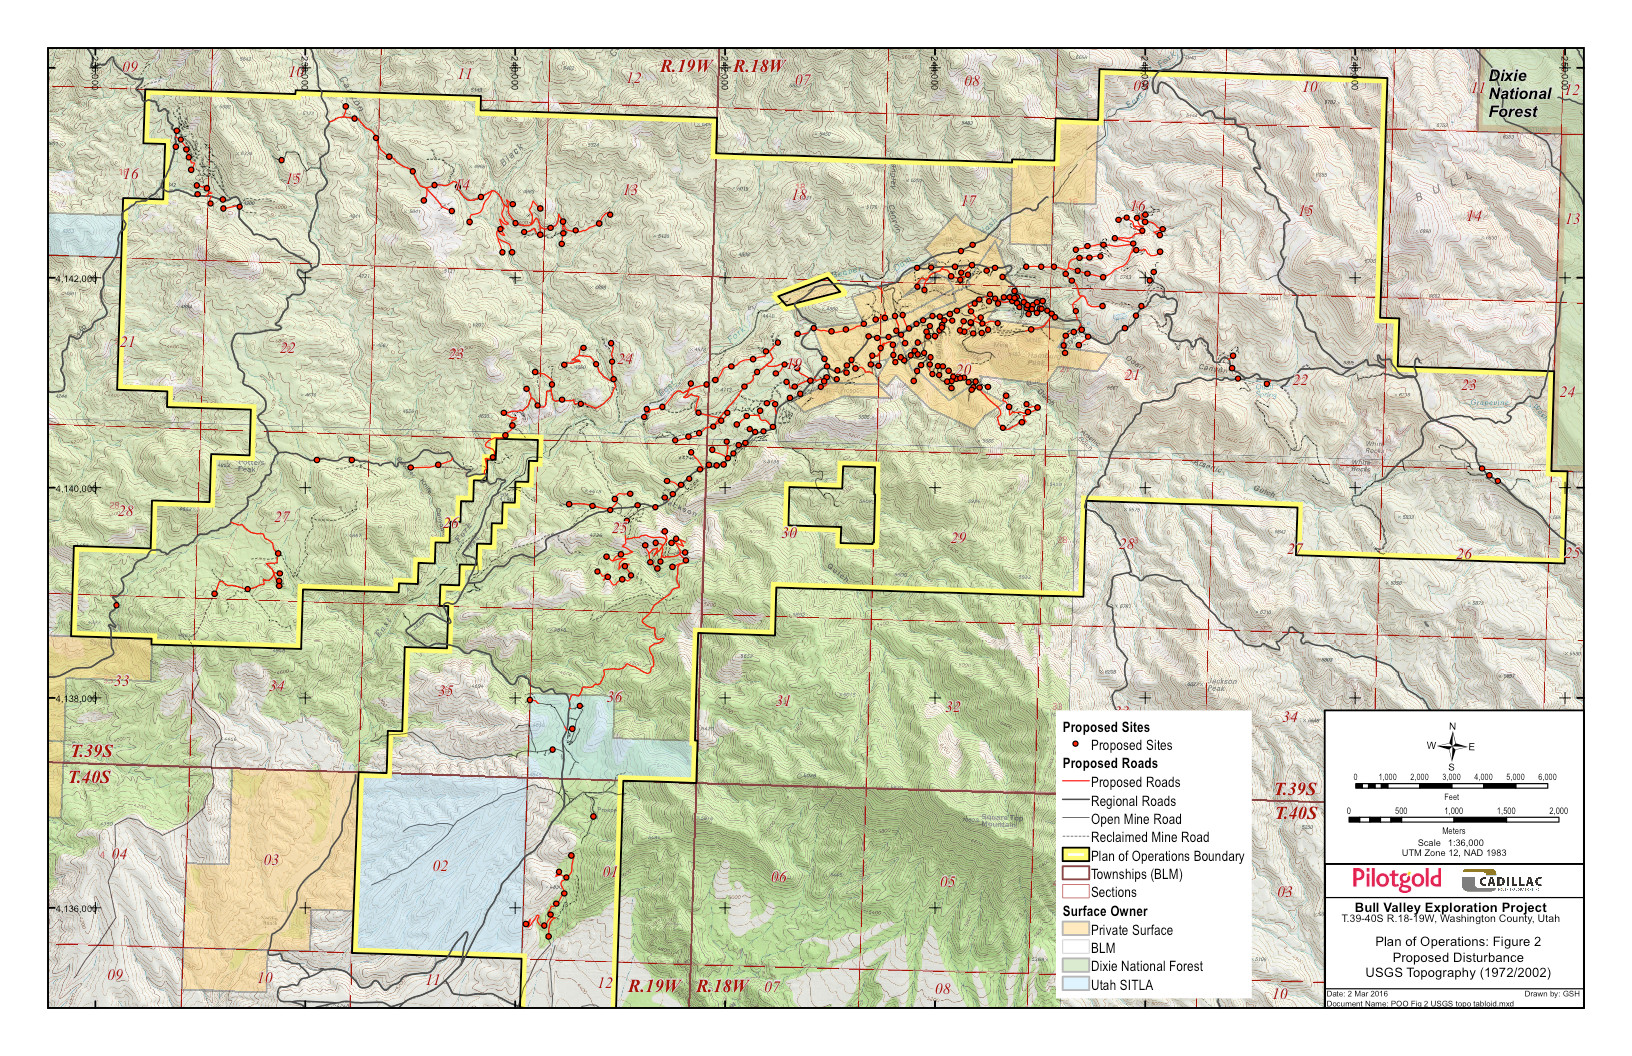 Map of proposed drill sites and new roads in the Bull Valley Exploration Project | Image courtesy of Bureau of Land Management, St. George News